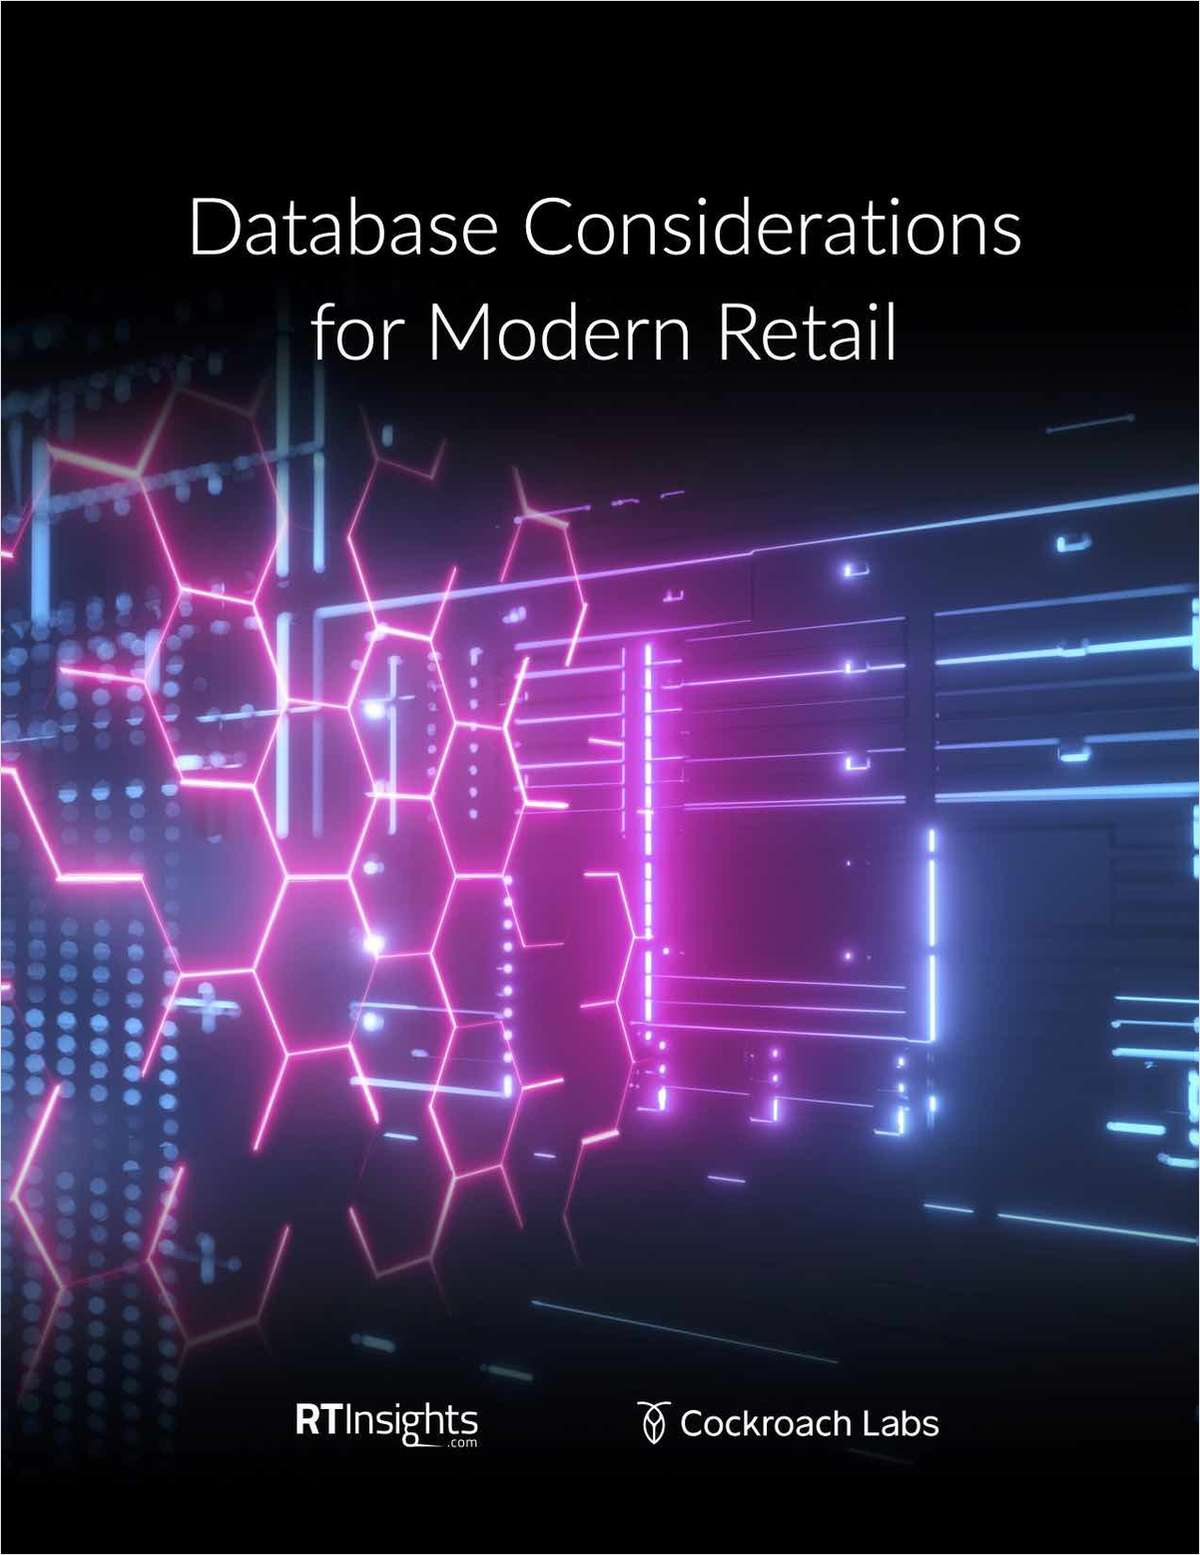 Database Considerations for Modern Retail